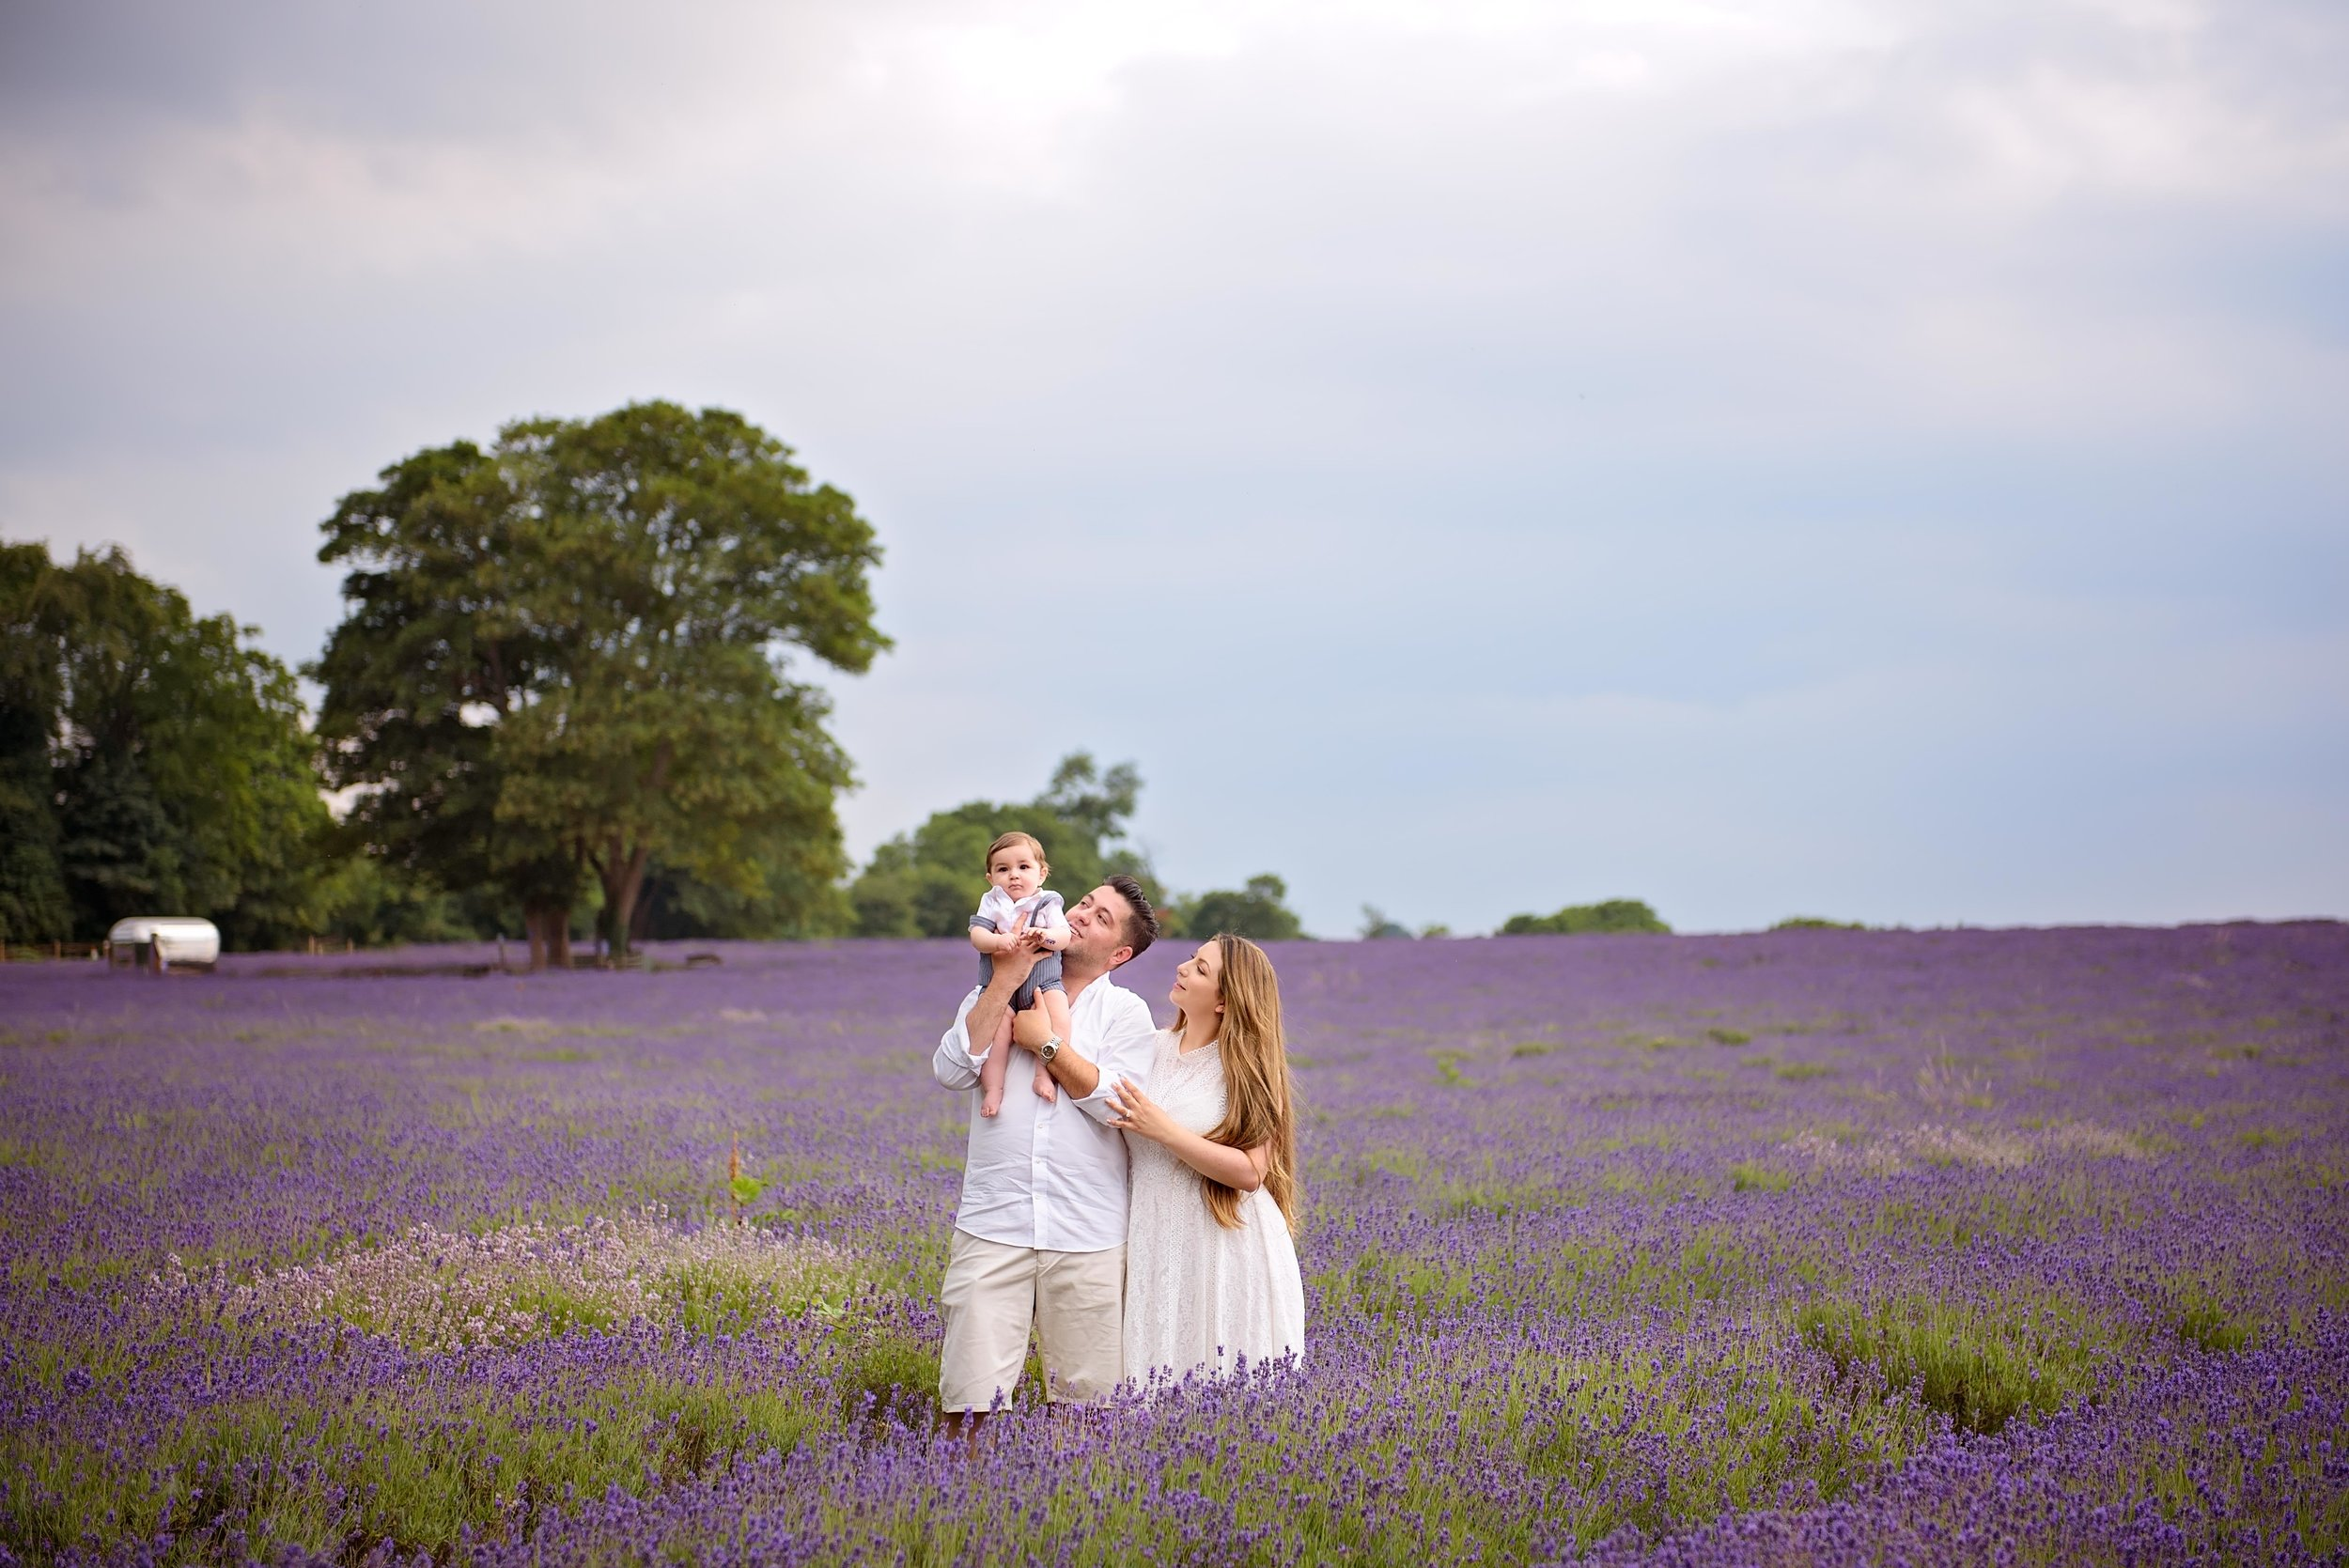 Best family photographers UK